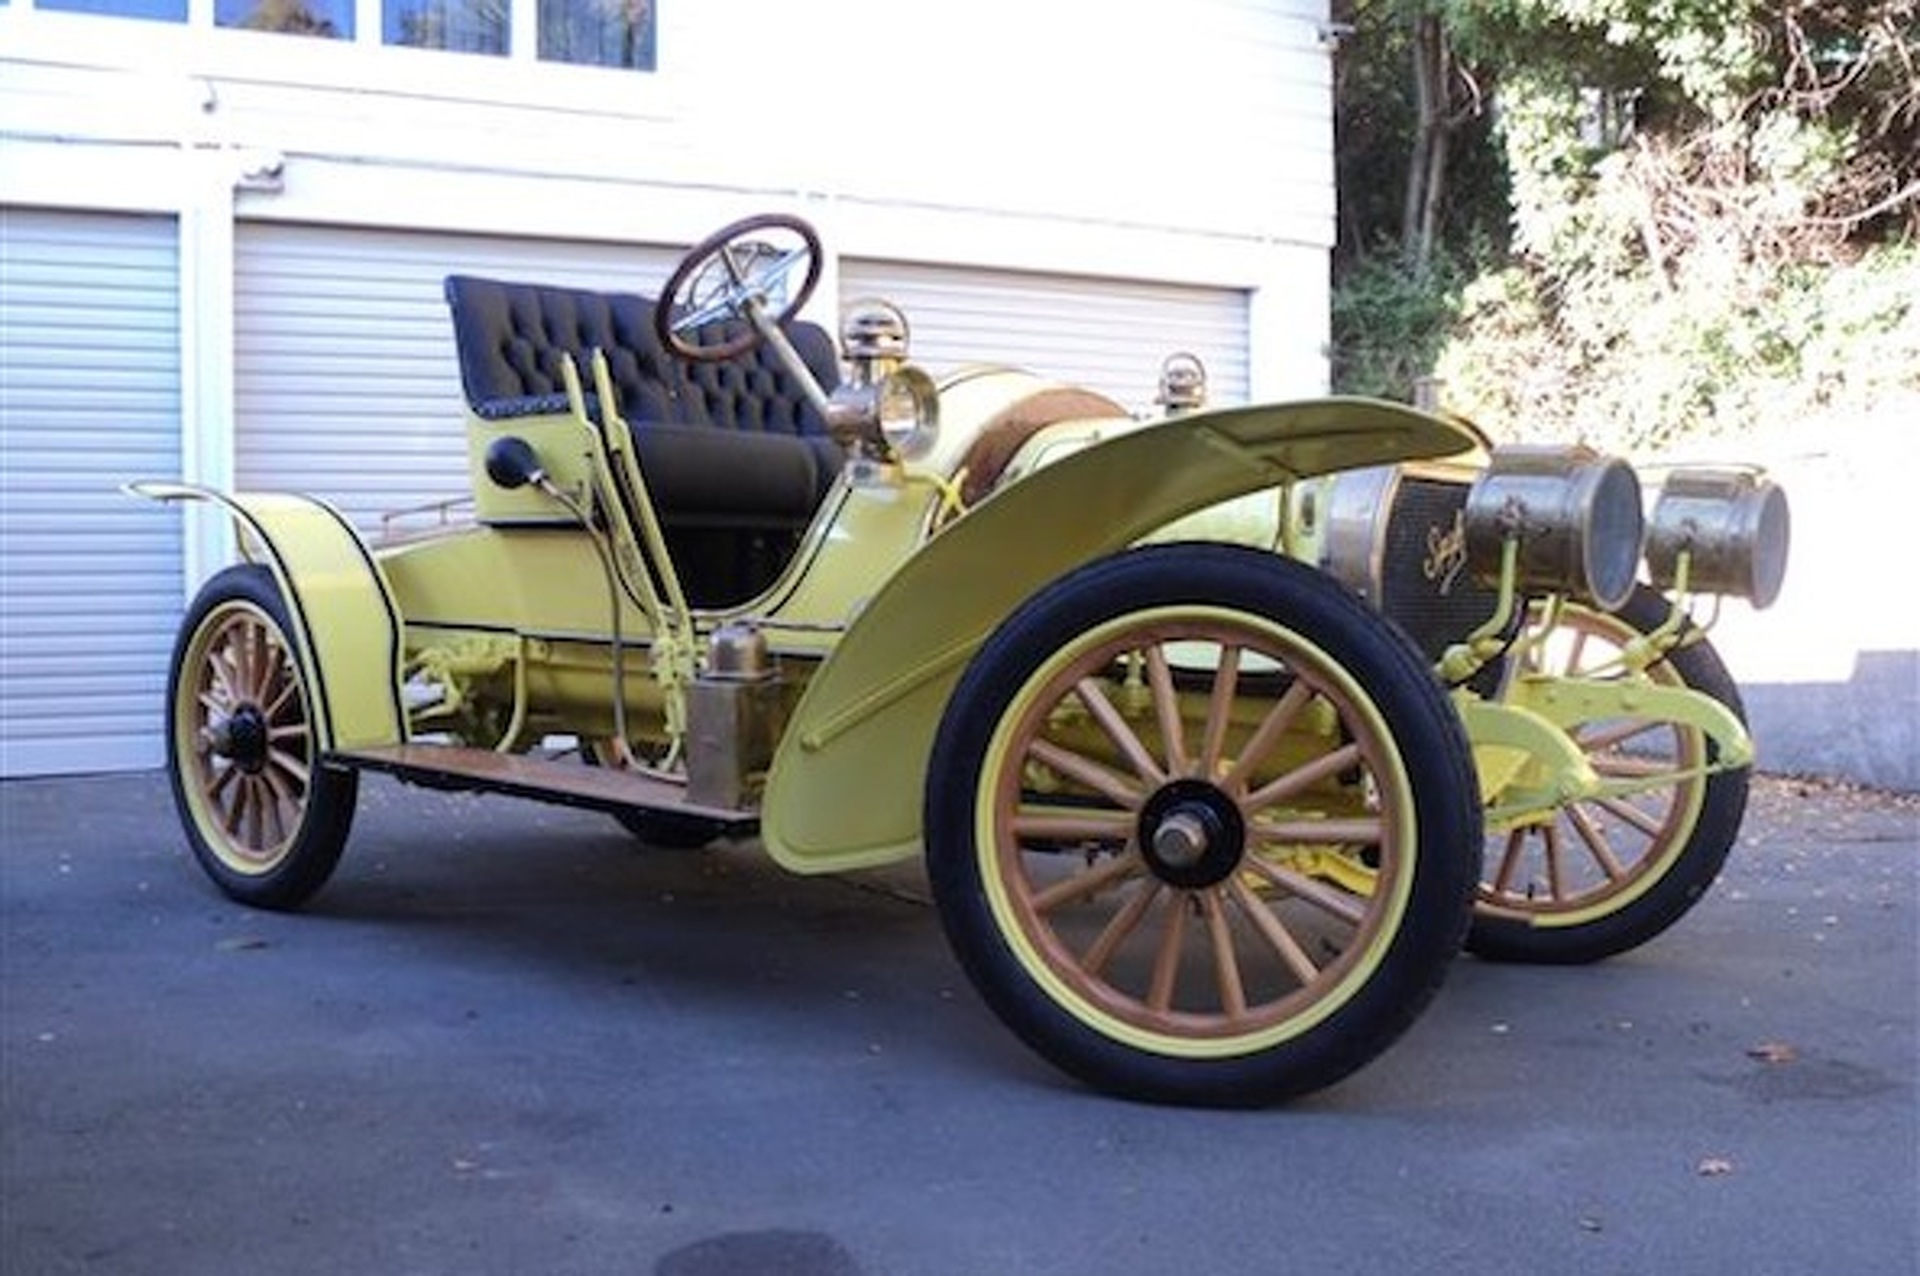 Rob Spyker Gives a Closer Look at his 1907 Spyker Restoration Project